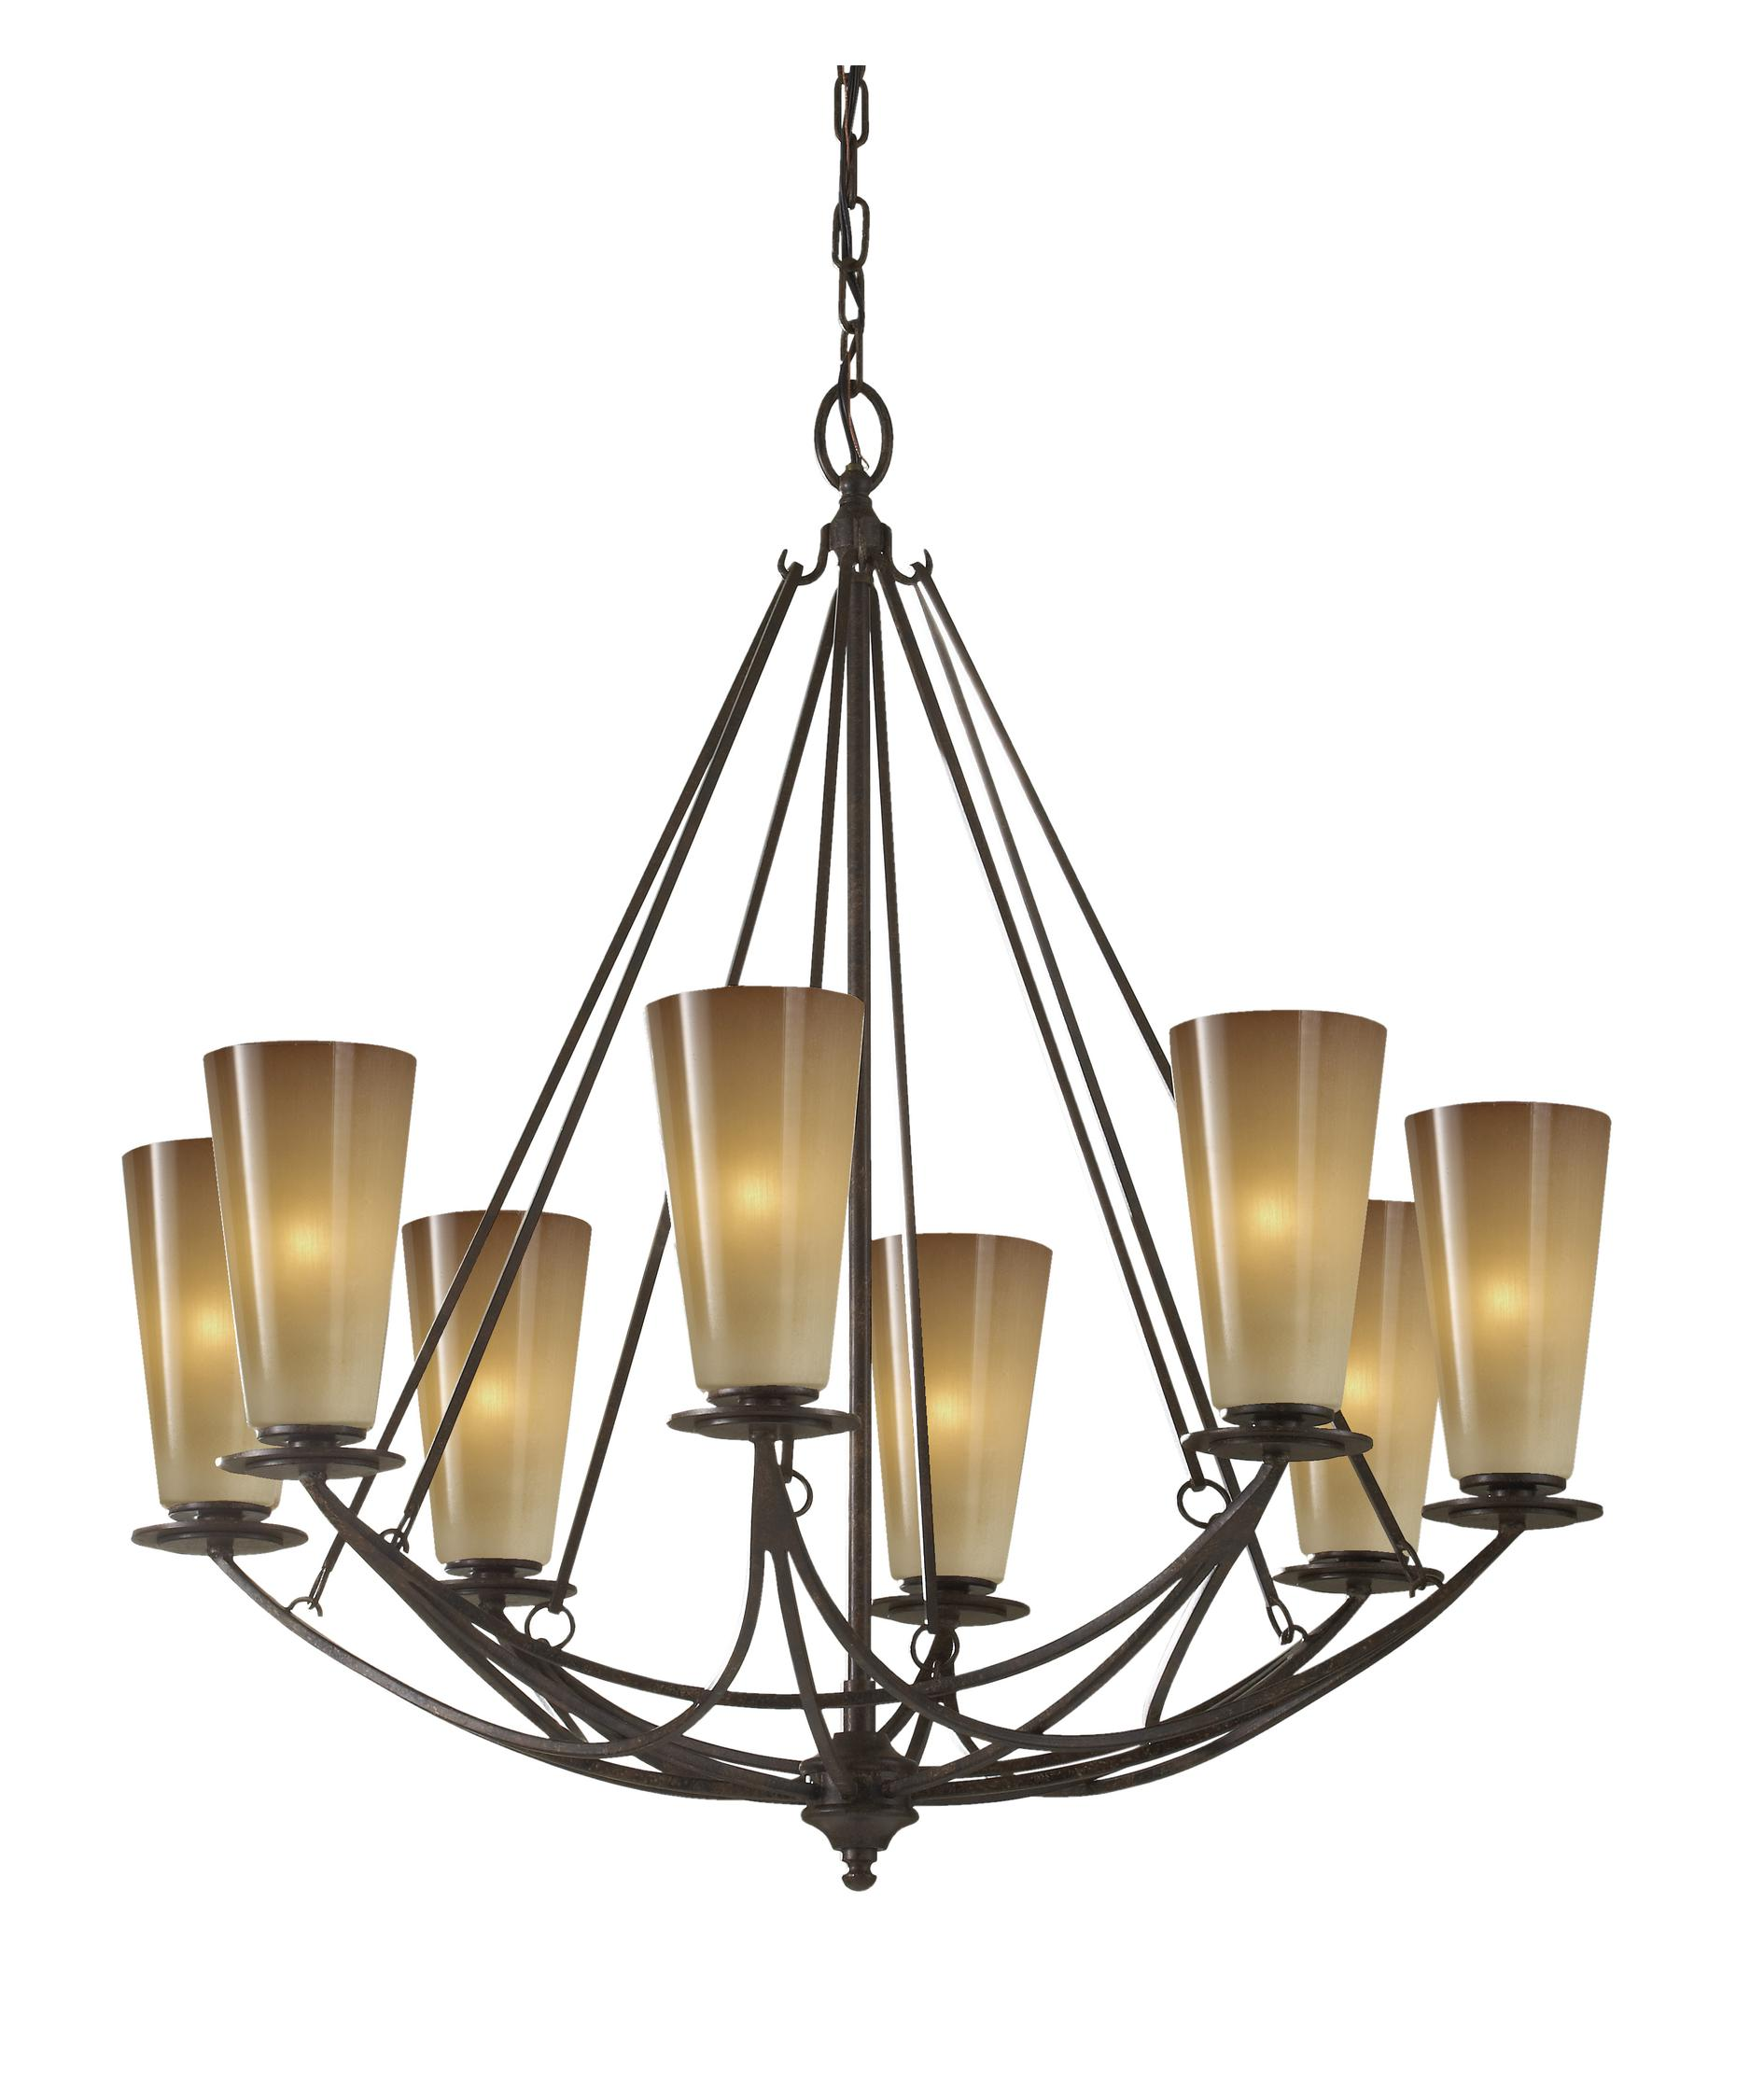 Murray Feiss El Nido 28 Inch Wide 8 Light Chandelier – Murray Feiss Chandeliers